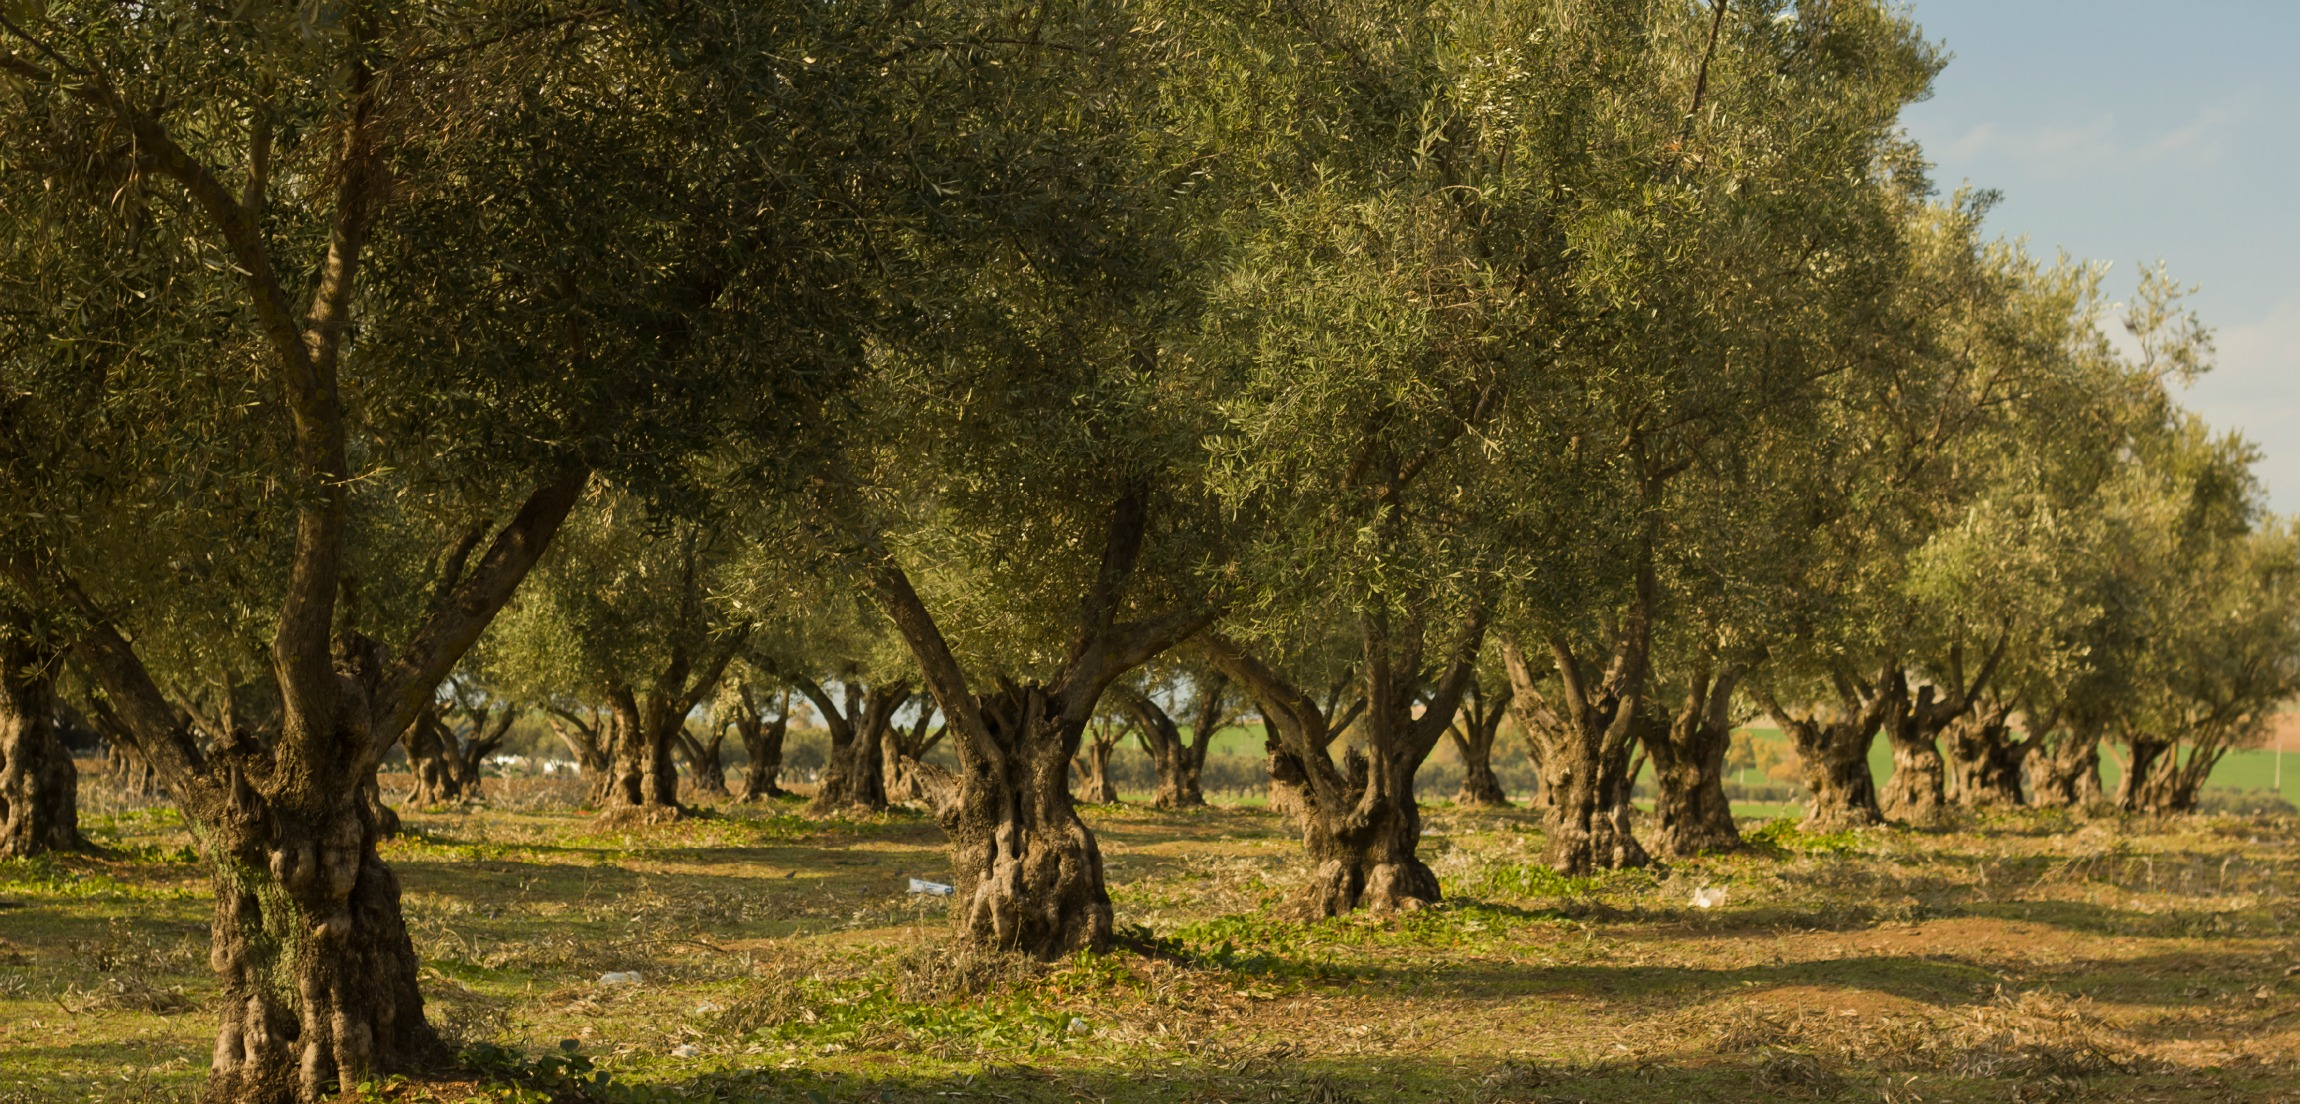 Our private olive groves